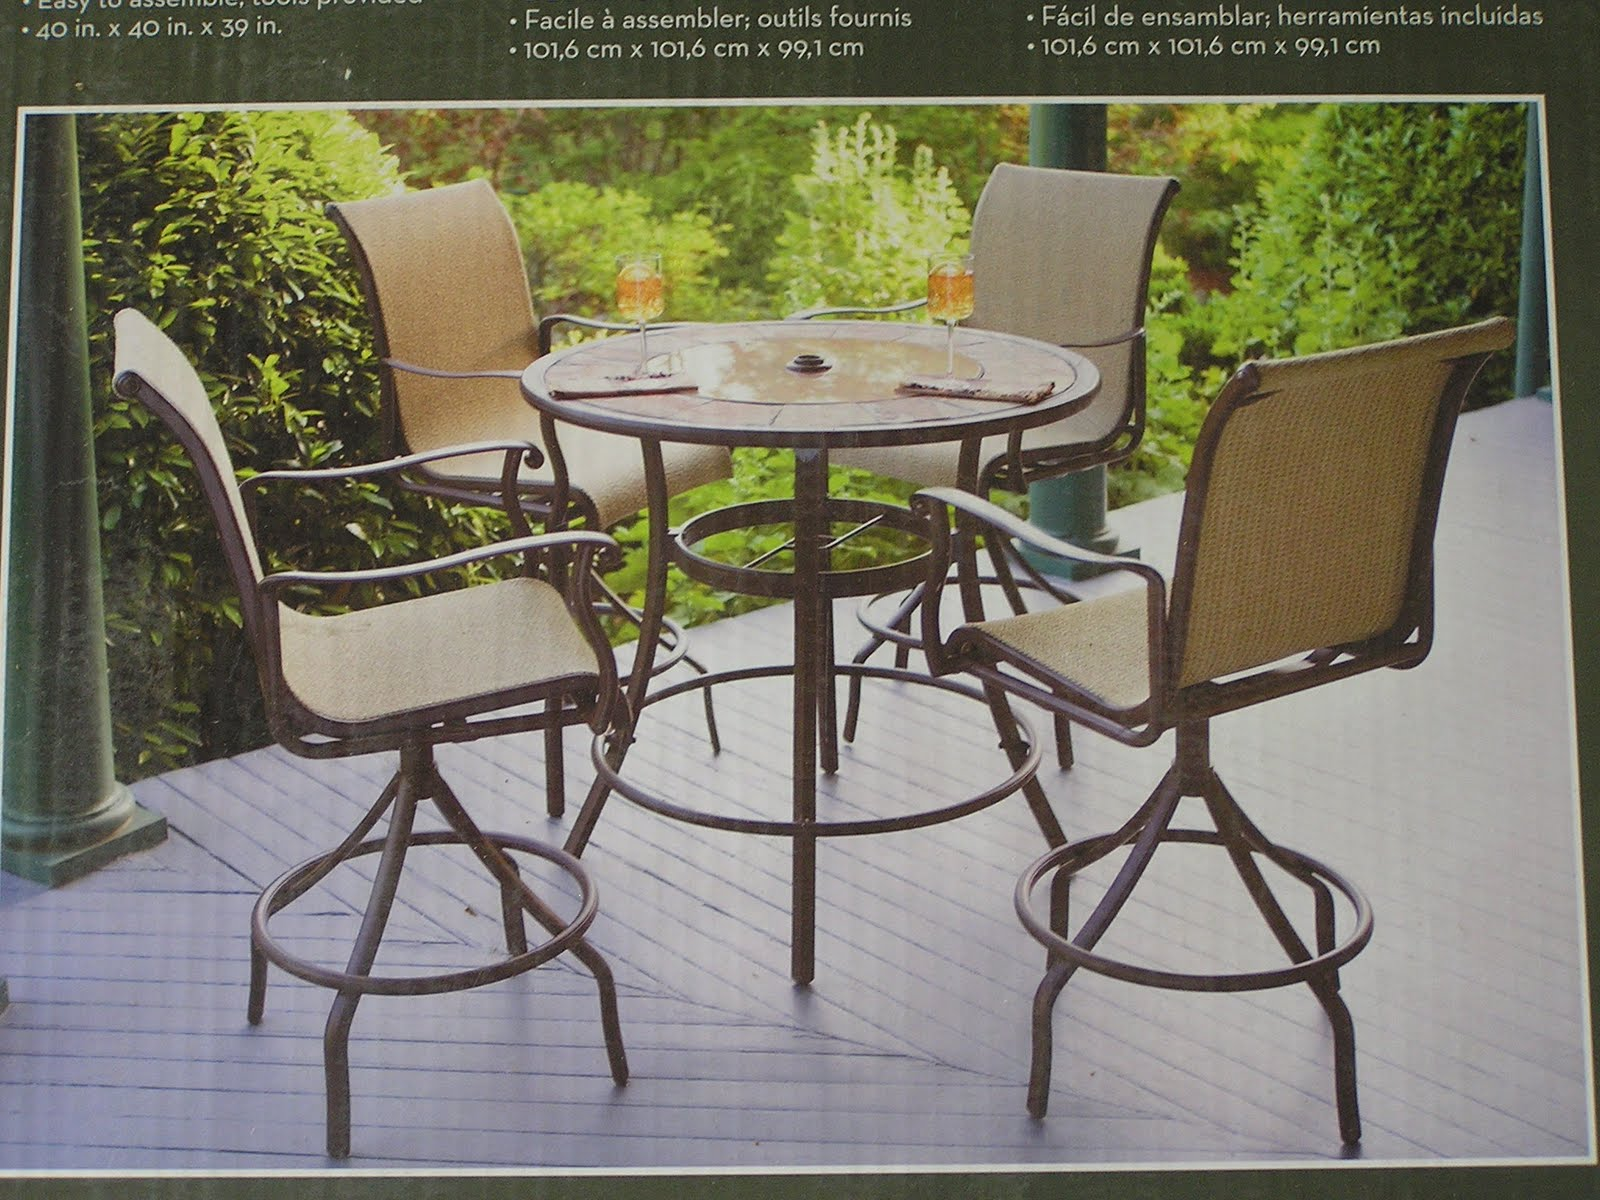 Patio Table Set | Patio Design Ideas